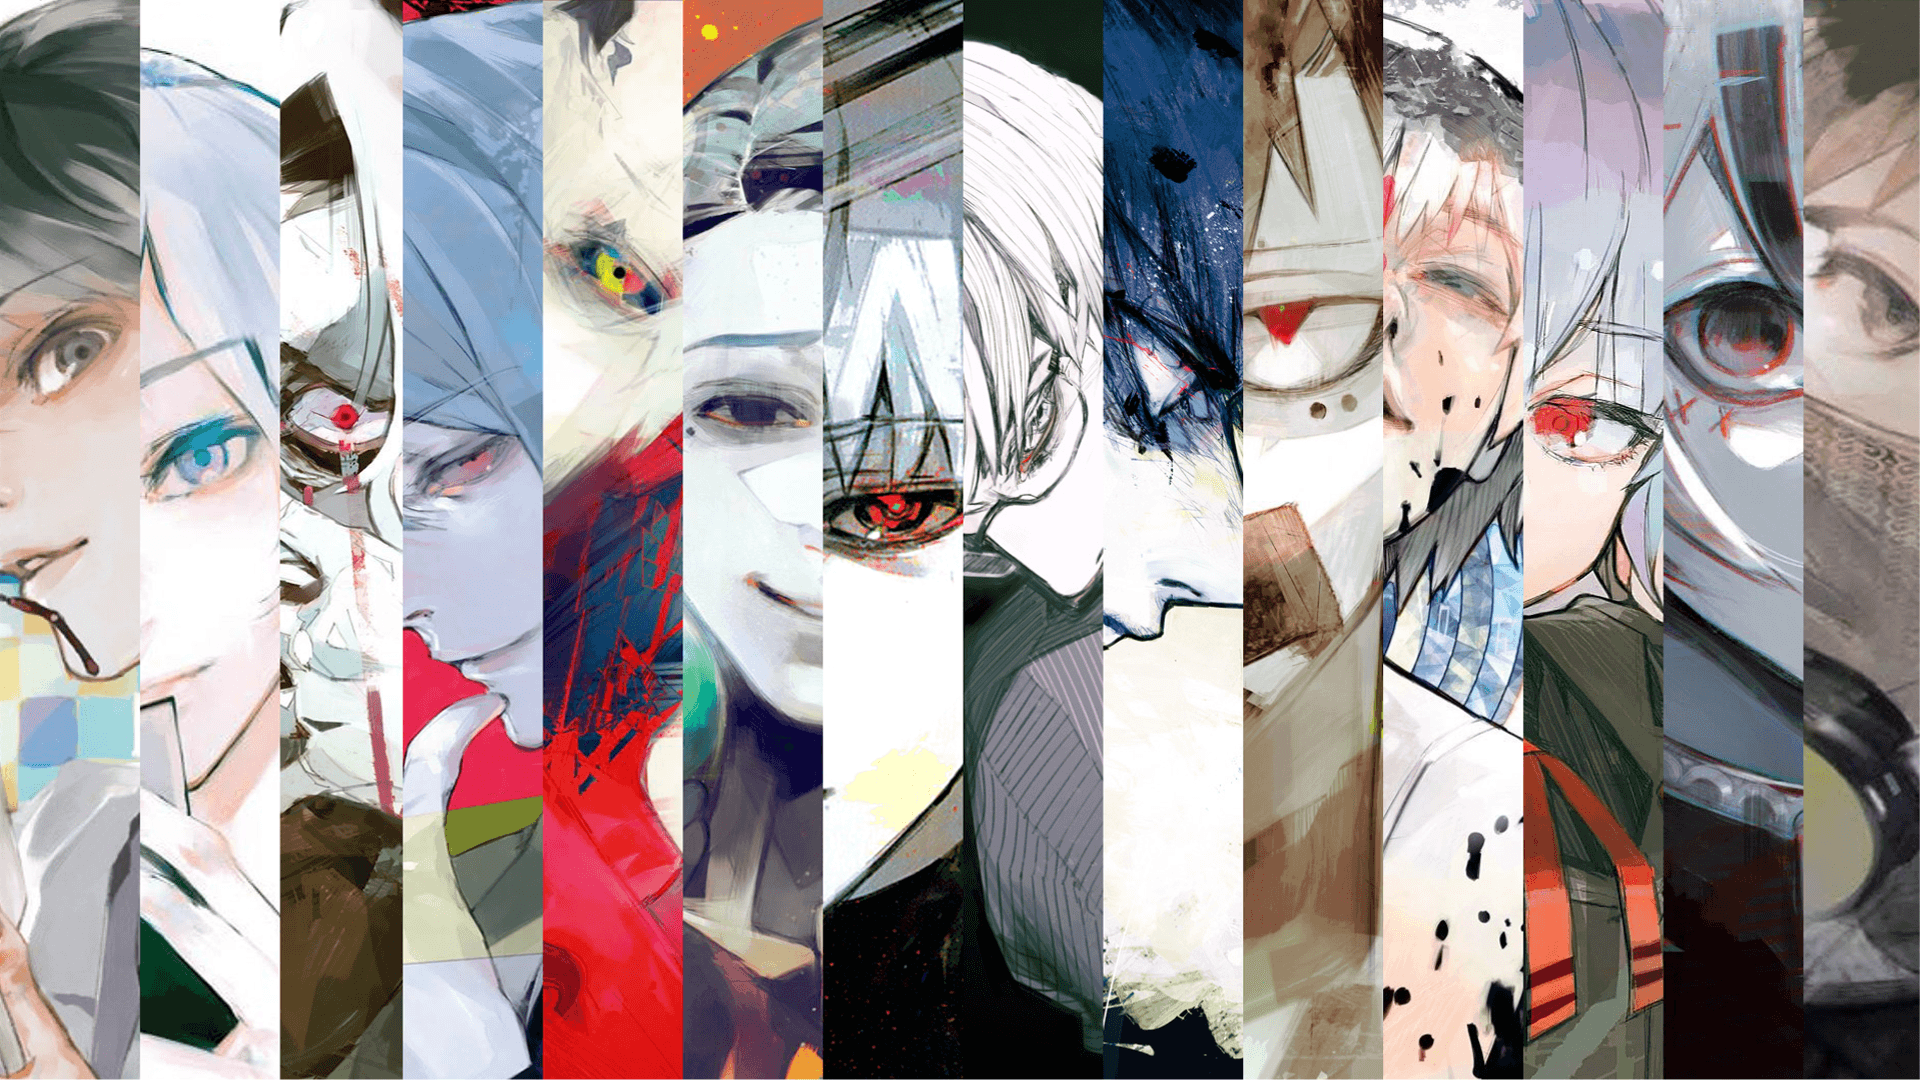 Volume Covers Tokyo Ghoul Wallpapers Top Free Volume Covers